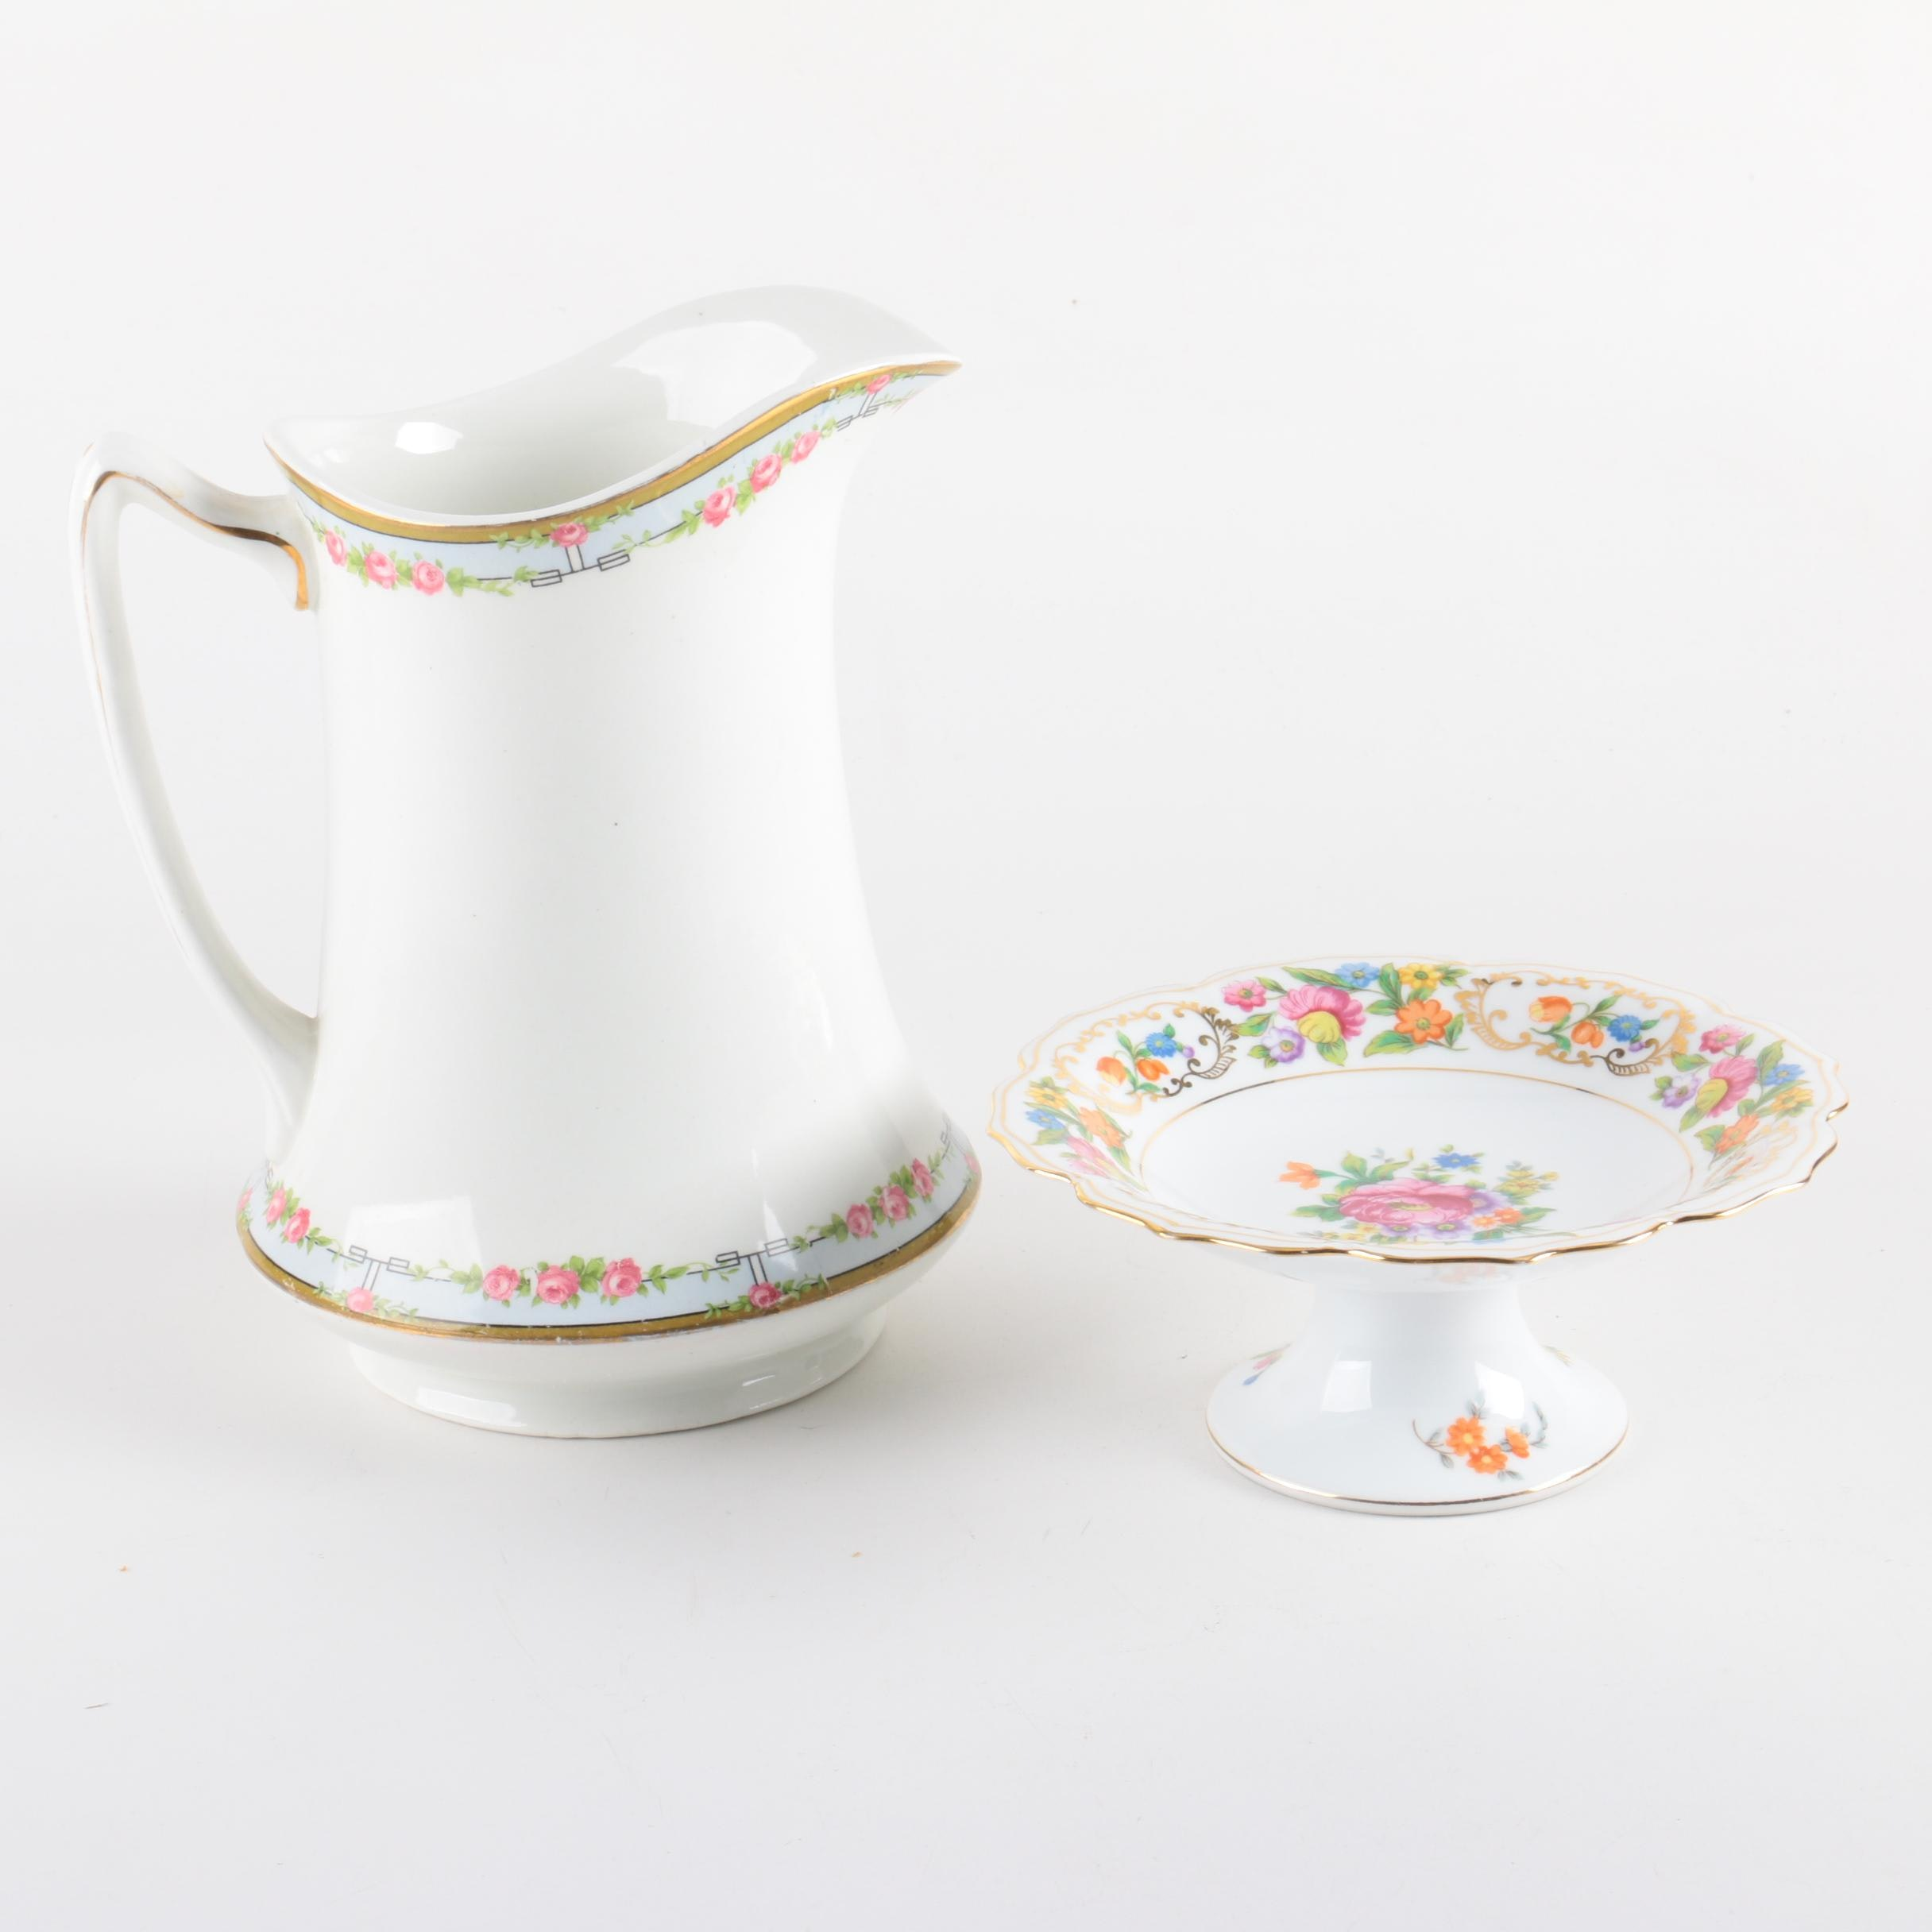 1914-25 W. H. Grindley Pitcher and Noritake Compote